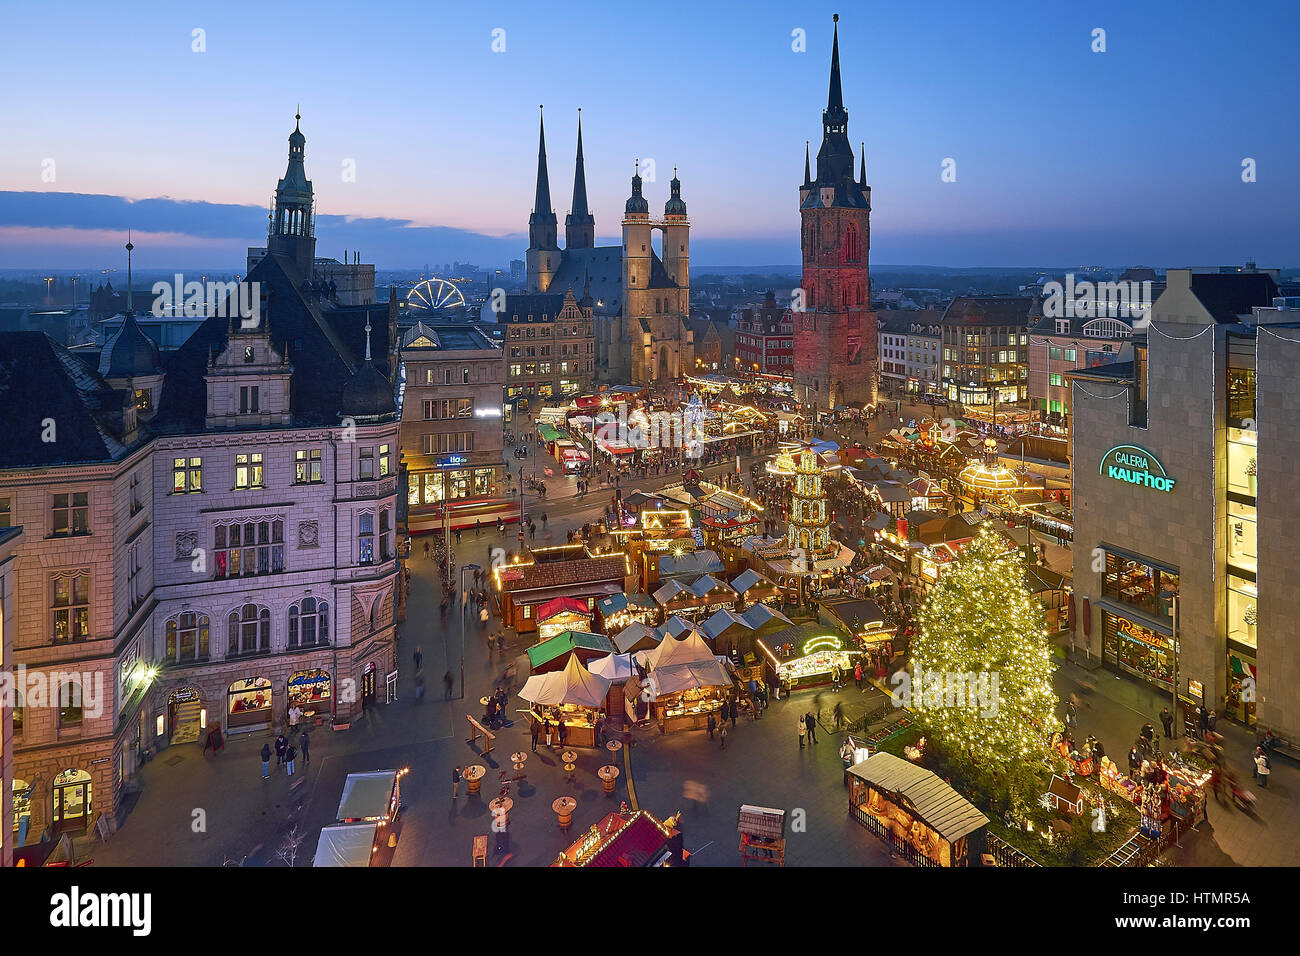 weihnachtsmarkt halle saale sachsen anhalt deutschland stockfoto bild 135681542 alamy. Black Bedroom Furniture Sets. Home Design Ideas